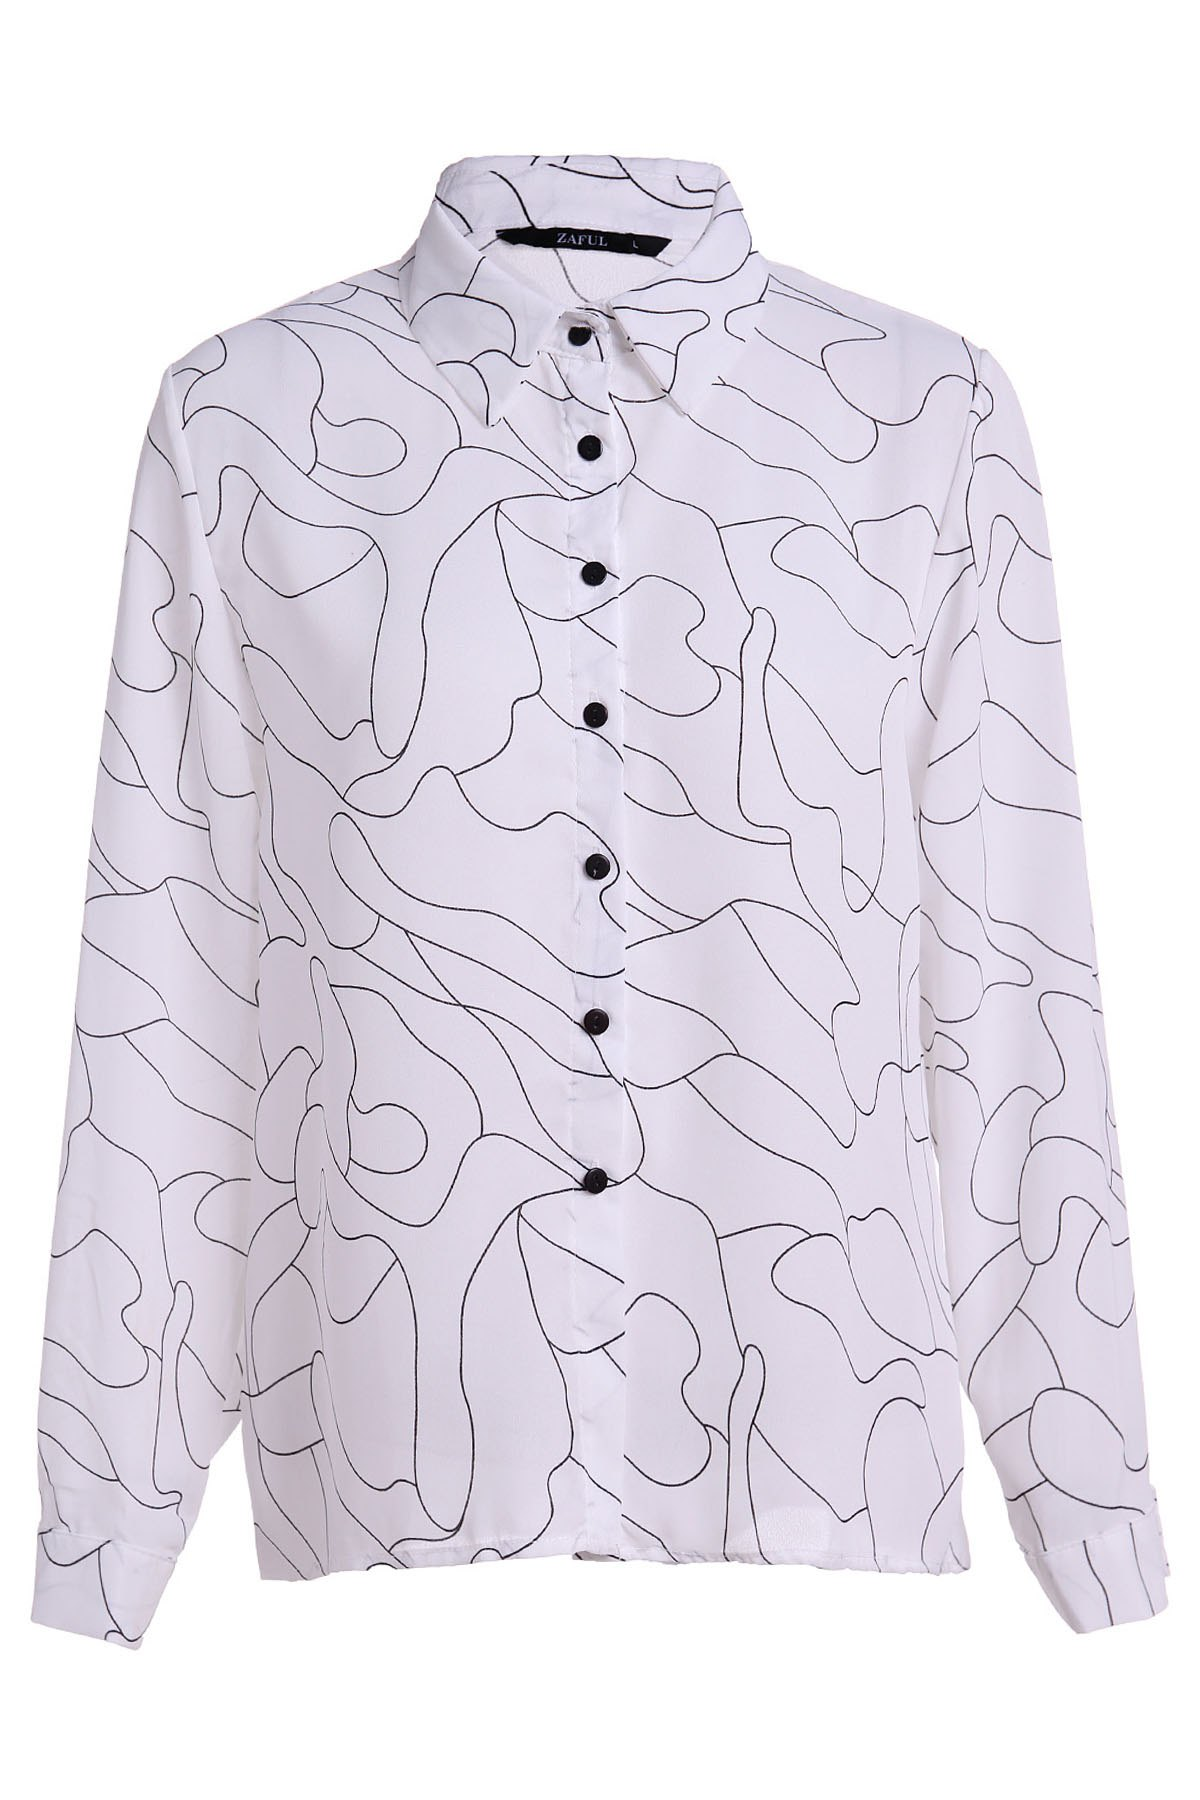 Stripes Print Long Sleeve Formal Shirt - WHITE L